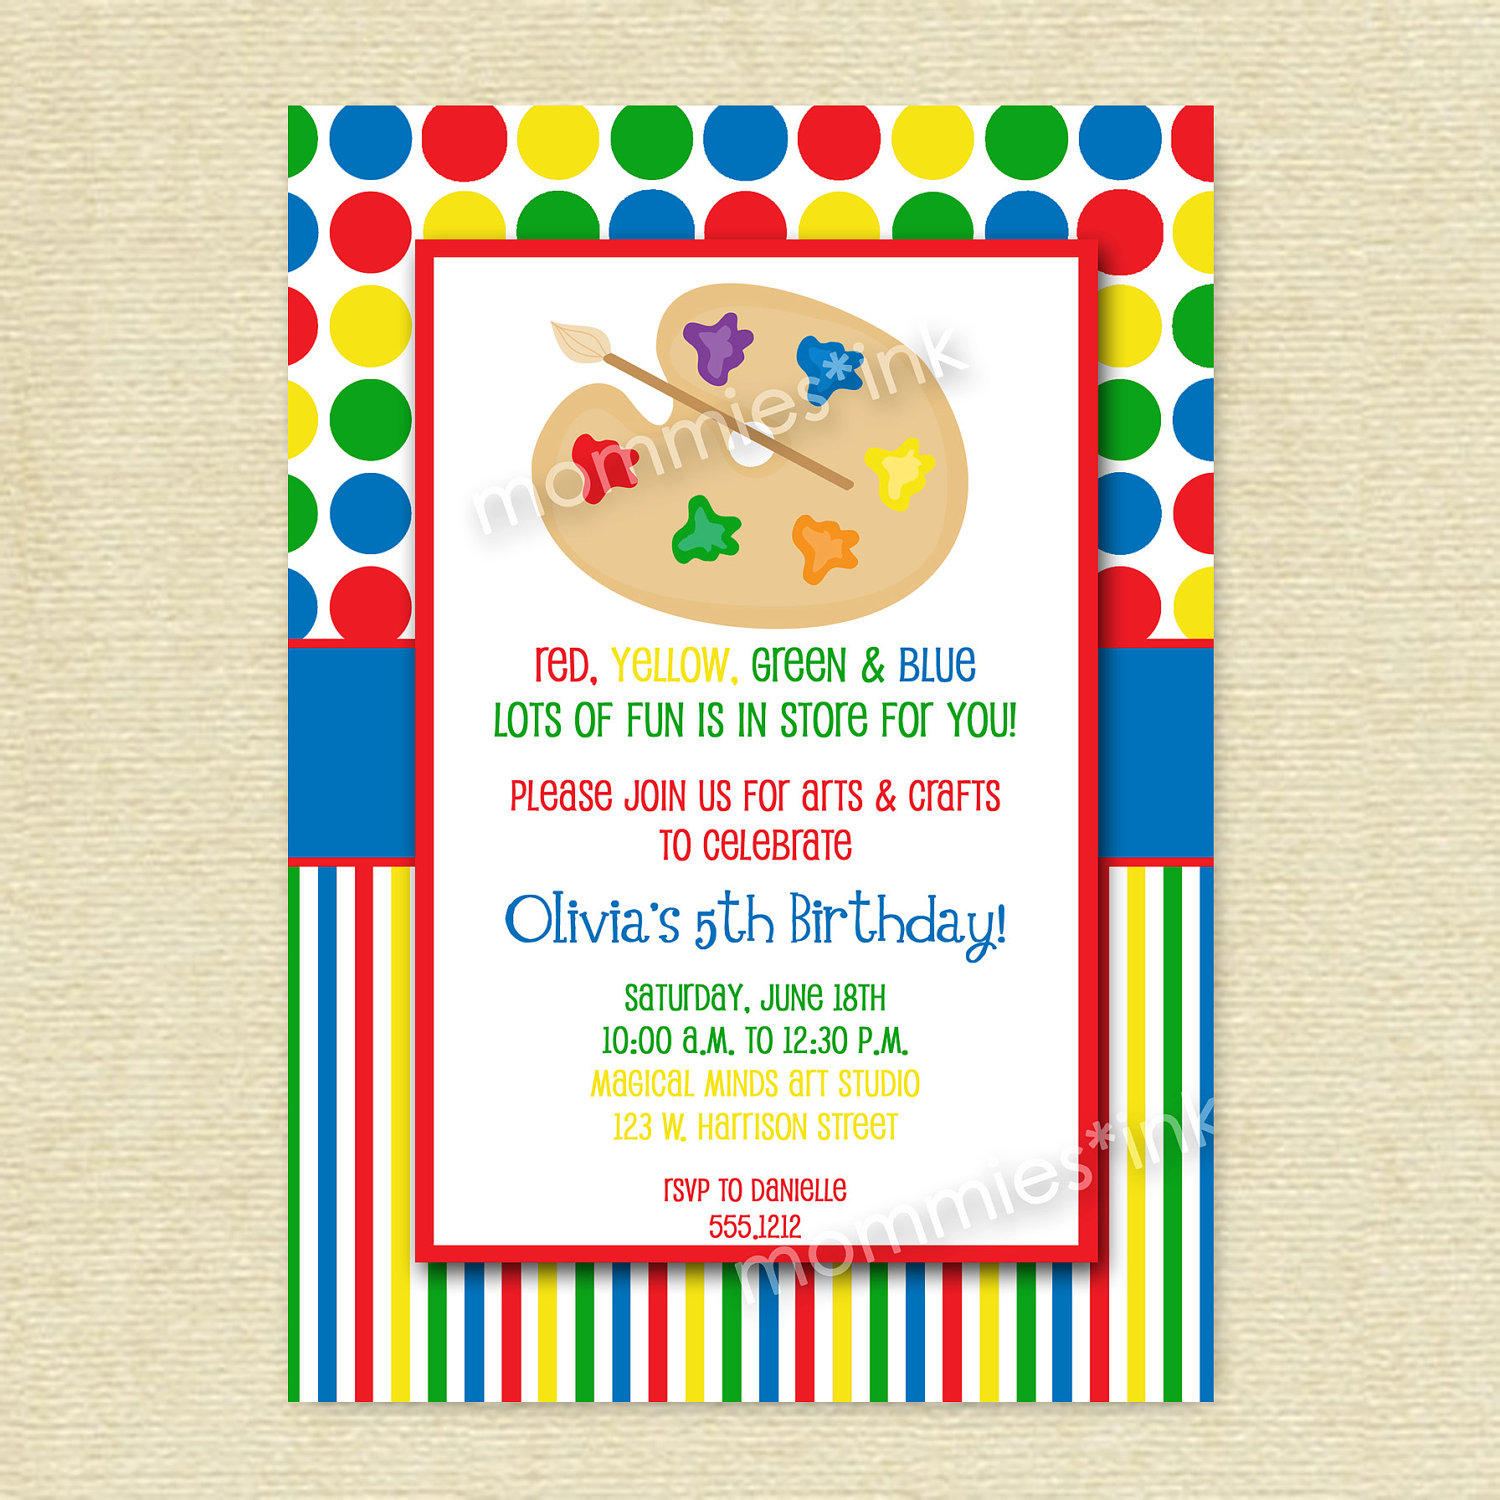 art themed birthday party invitation wording ; Art-Themed-Birthday-Party-Invitations-to-get-ideas-how-to-make-your-own-birthday-Invitation-design-9